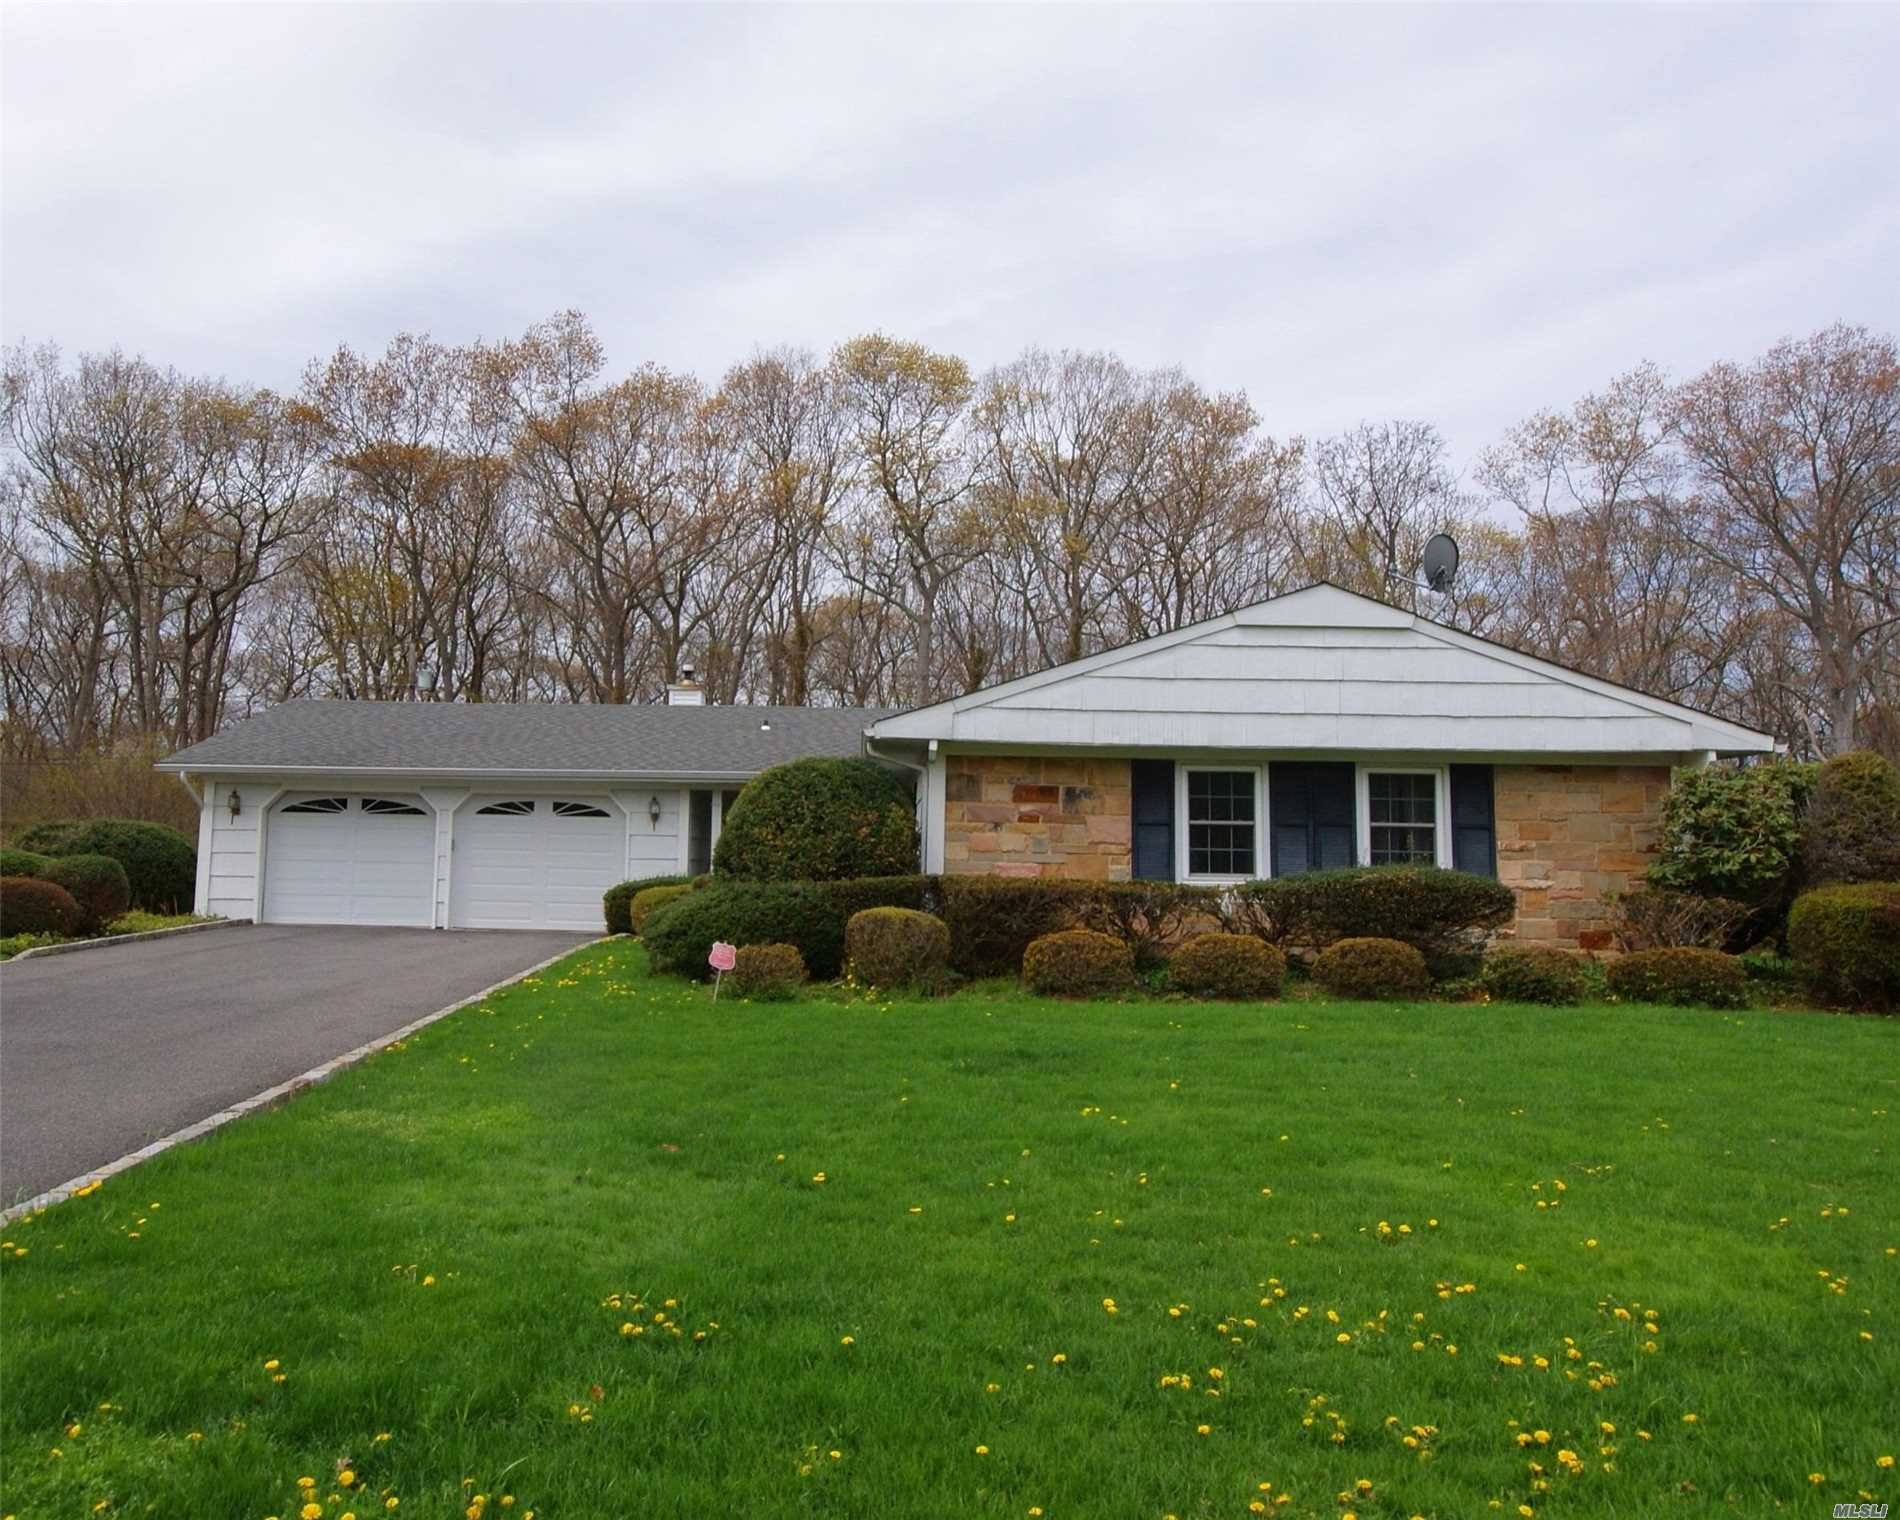 Buckingham Ranch In Desirable H Section Of Stony Brook. Close To Houses Of Worship, Shopping, N Shore Beaches/Parks, Playground + So Much More!! Freshly Painted, Very Well Maintained, Clean And Ready To Move In!! Private Paver Patio In Rear With Level Yard, Cac, Fireplace With 2 Car Garage And Large Driveway!!